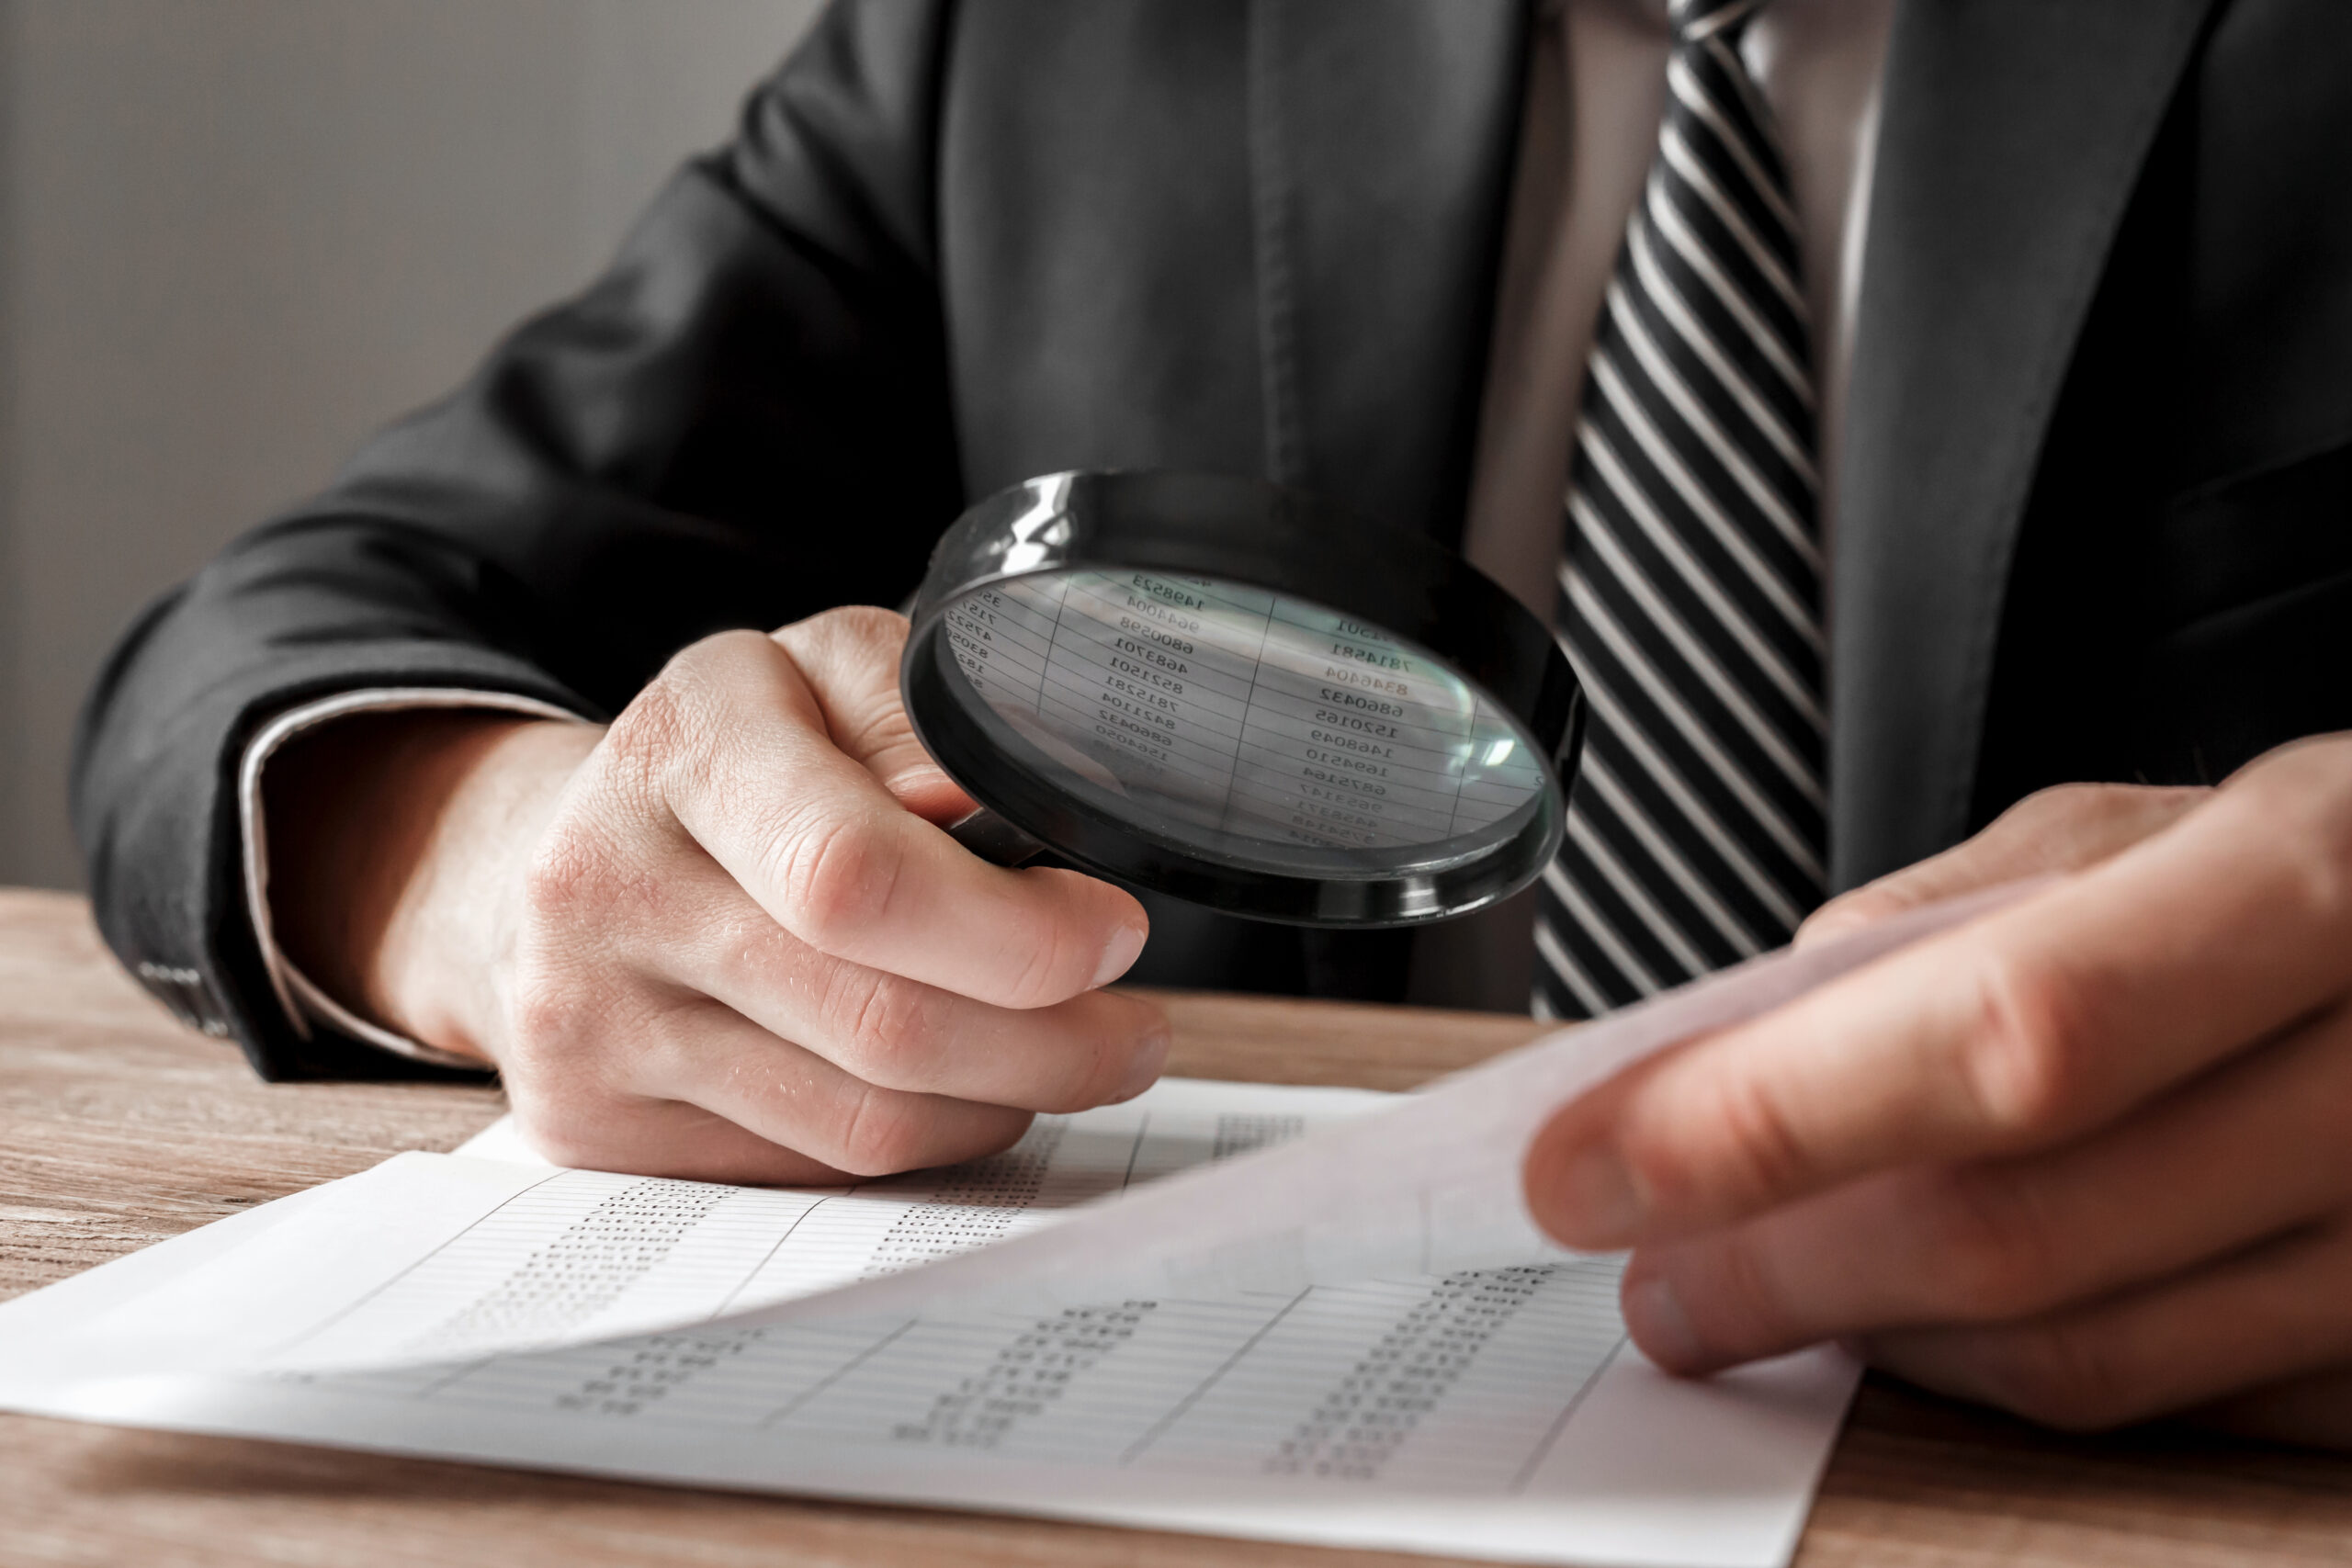 Penalties for Identity Theft in Texas